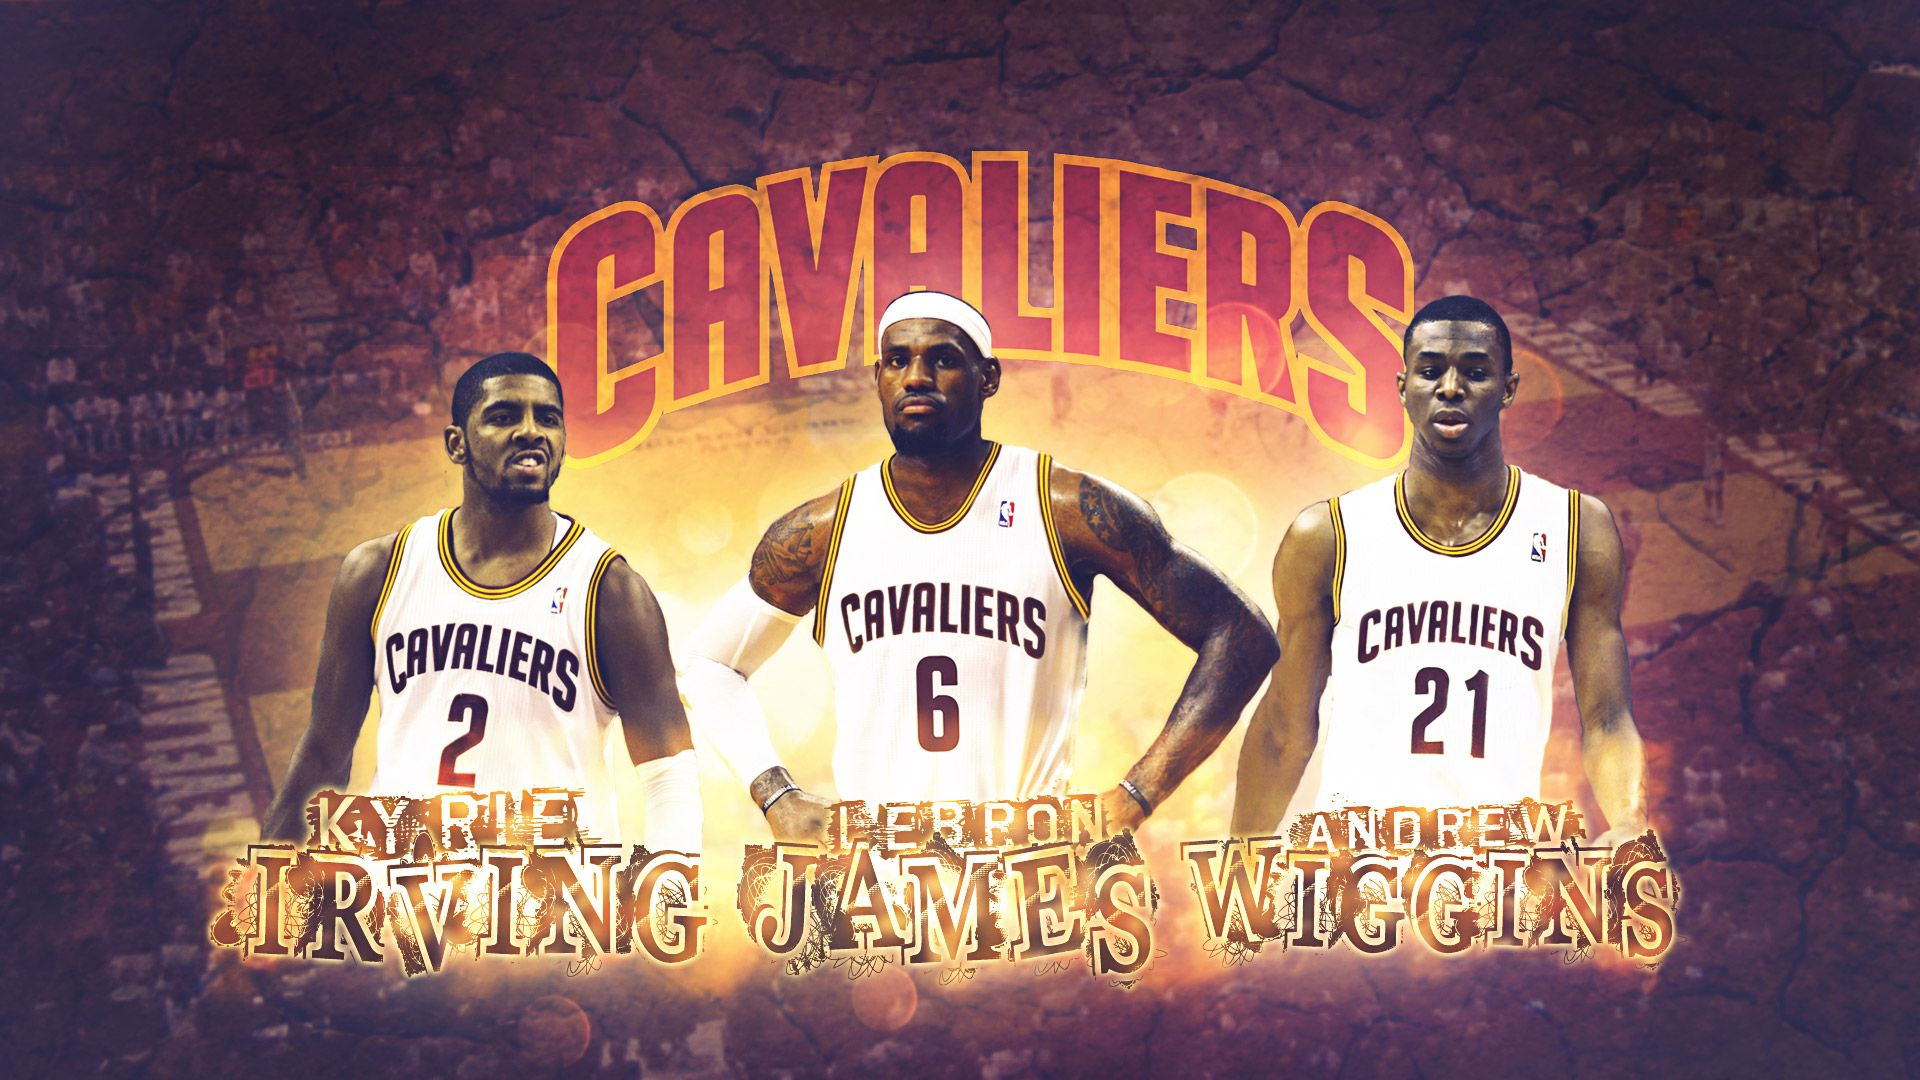 Cleveland Cavaliers Hd Hd Wallpapers Px Sport Photo Cleveland 1920x1080